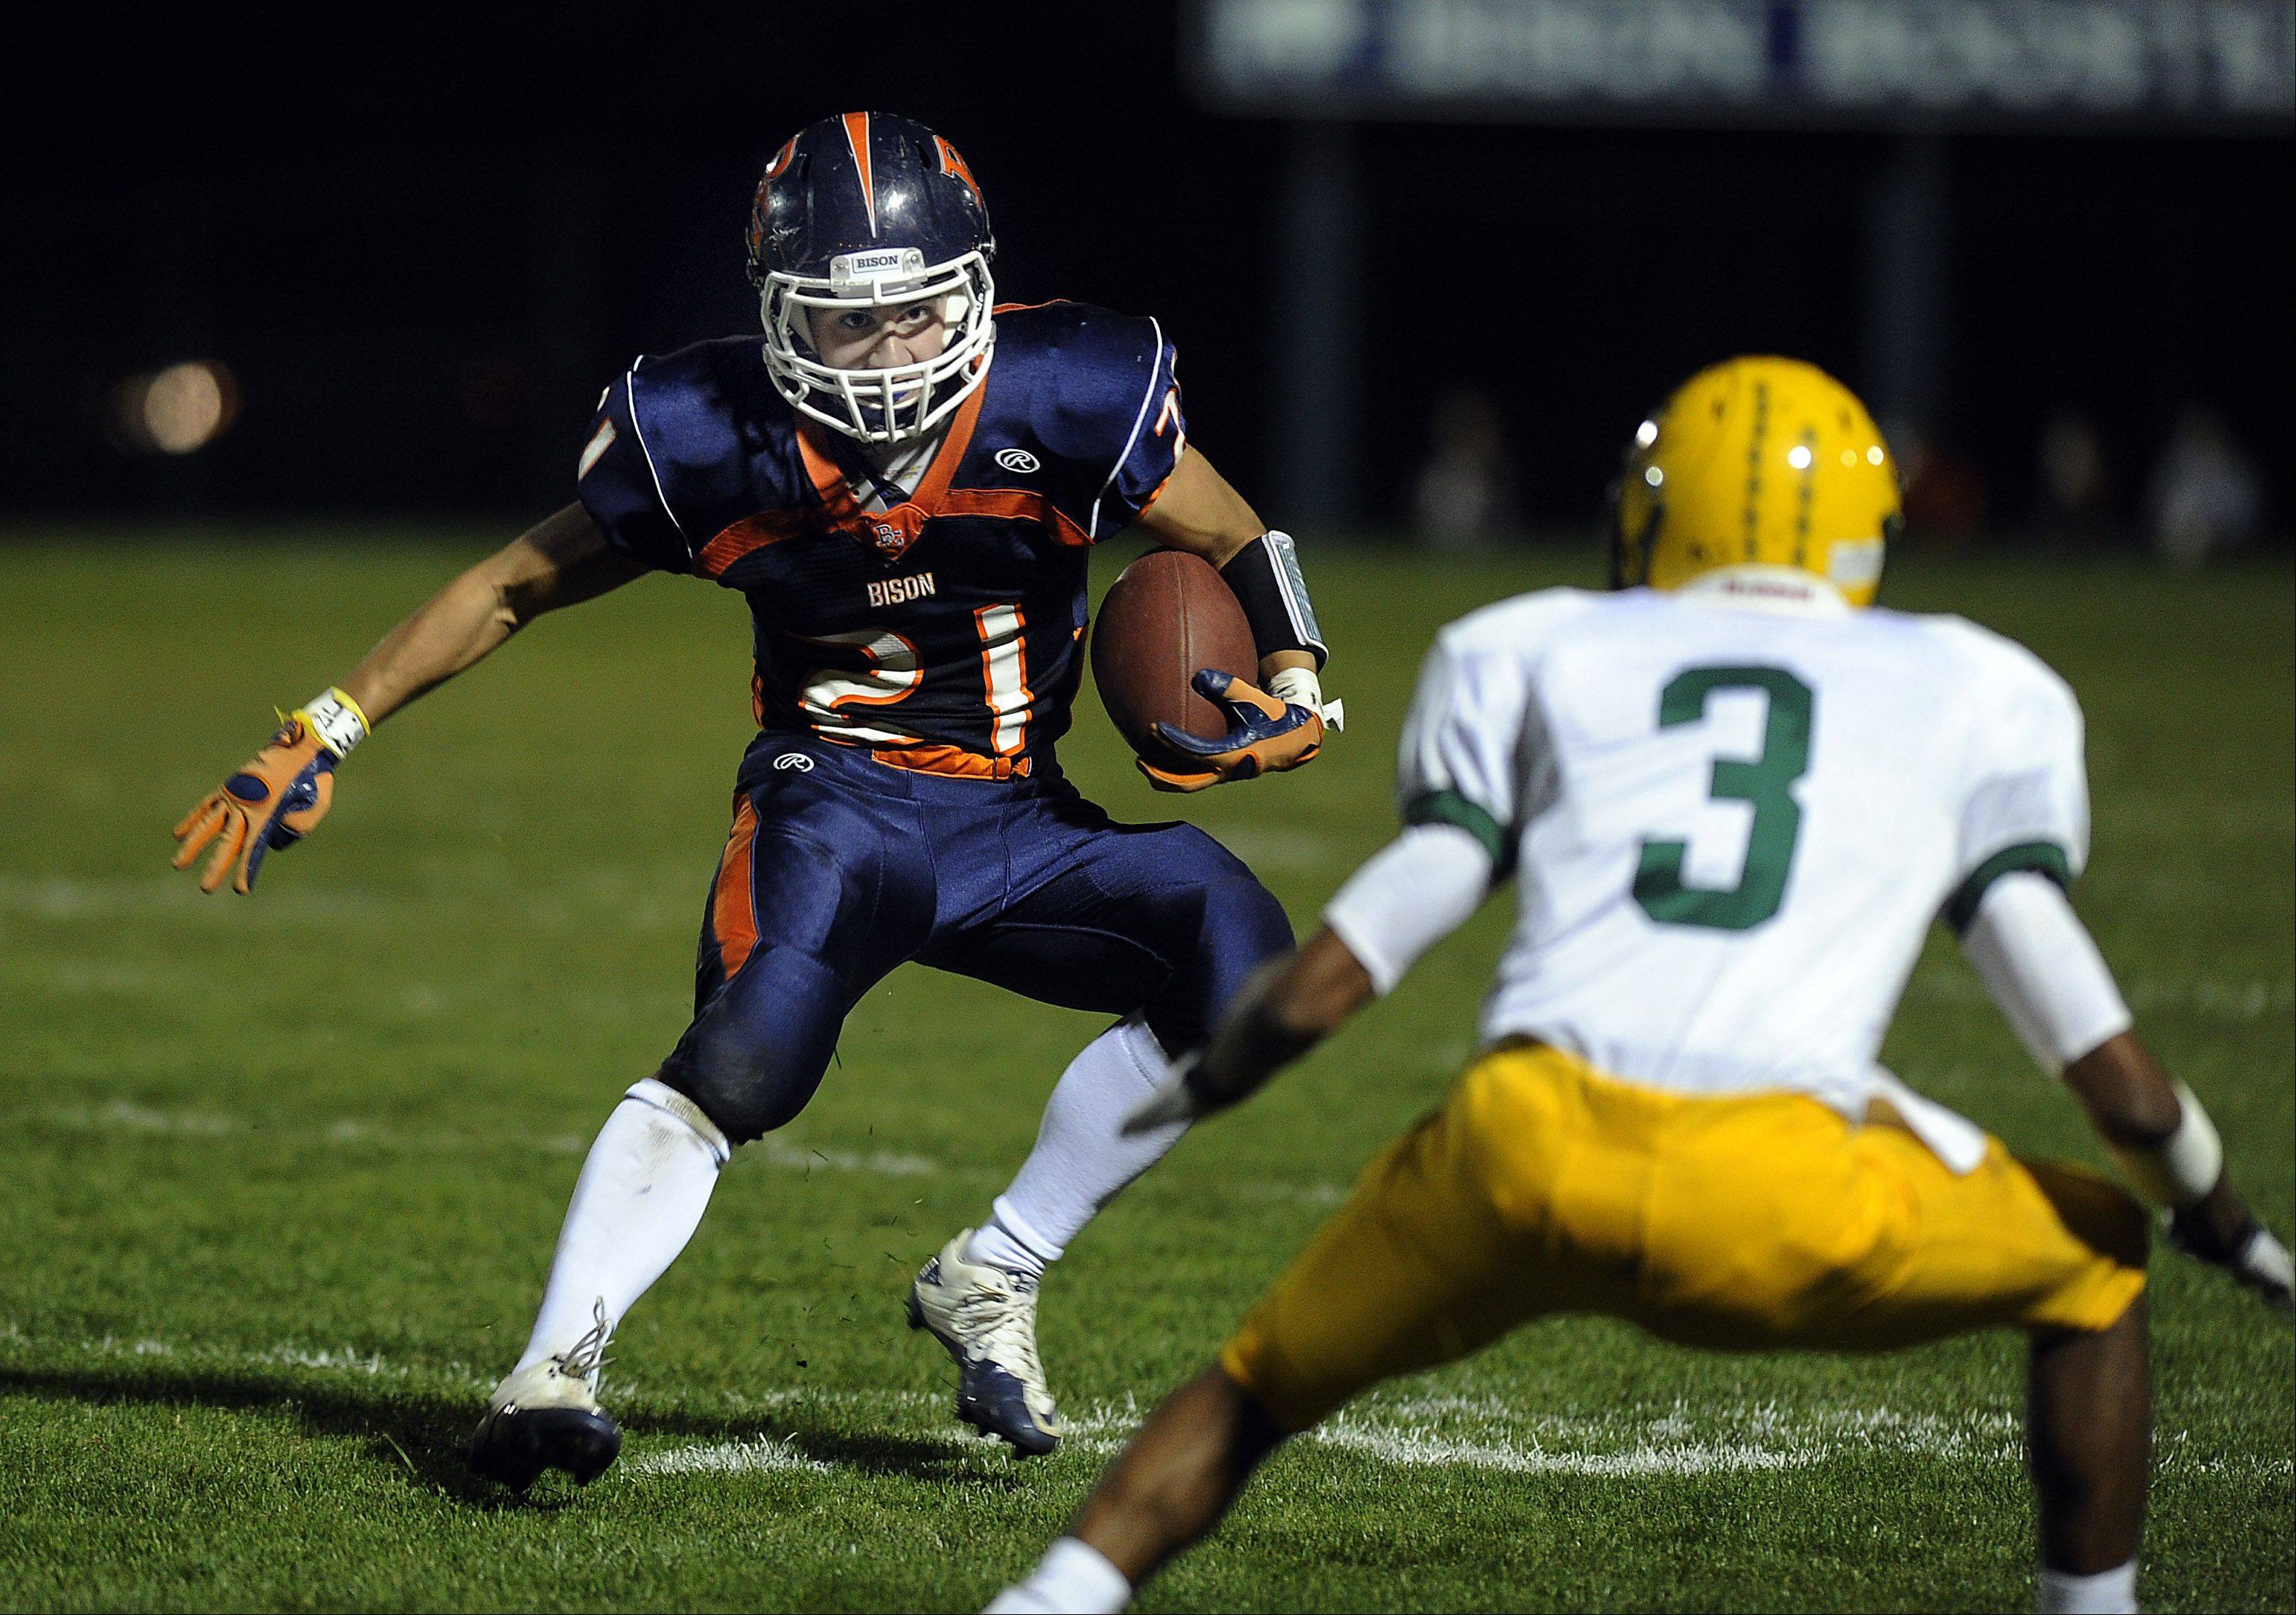 Buffalo Grove�s Alex Fritz stares down Elk Grove�s Kishan Patel as he runs for yardage slipping on the grass in the varsity matchup at Buffalo Grove High School on Friday.